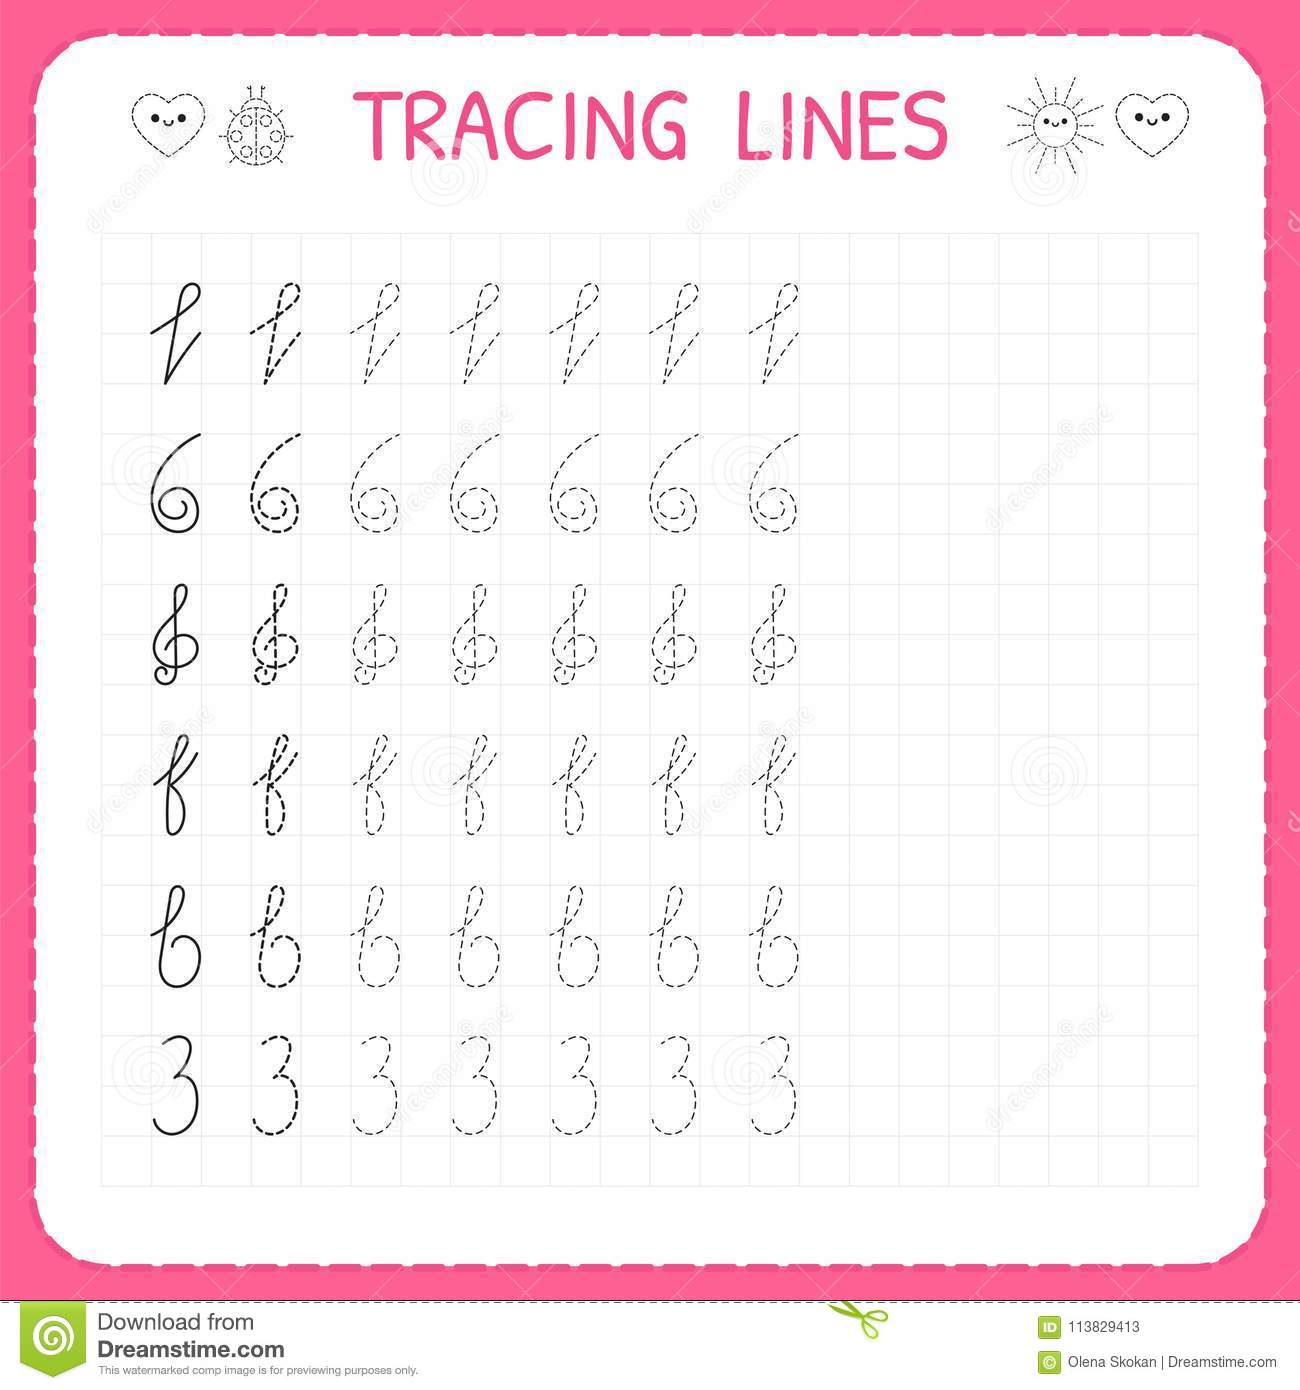 Tracing Lines Worksheet For Kids Trace The Pattern